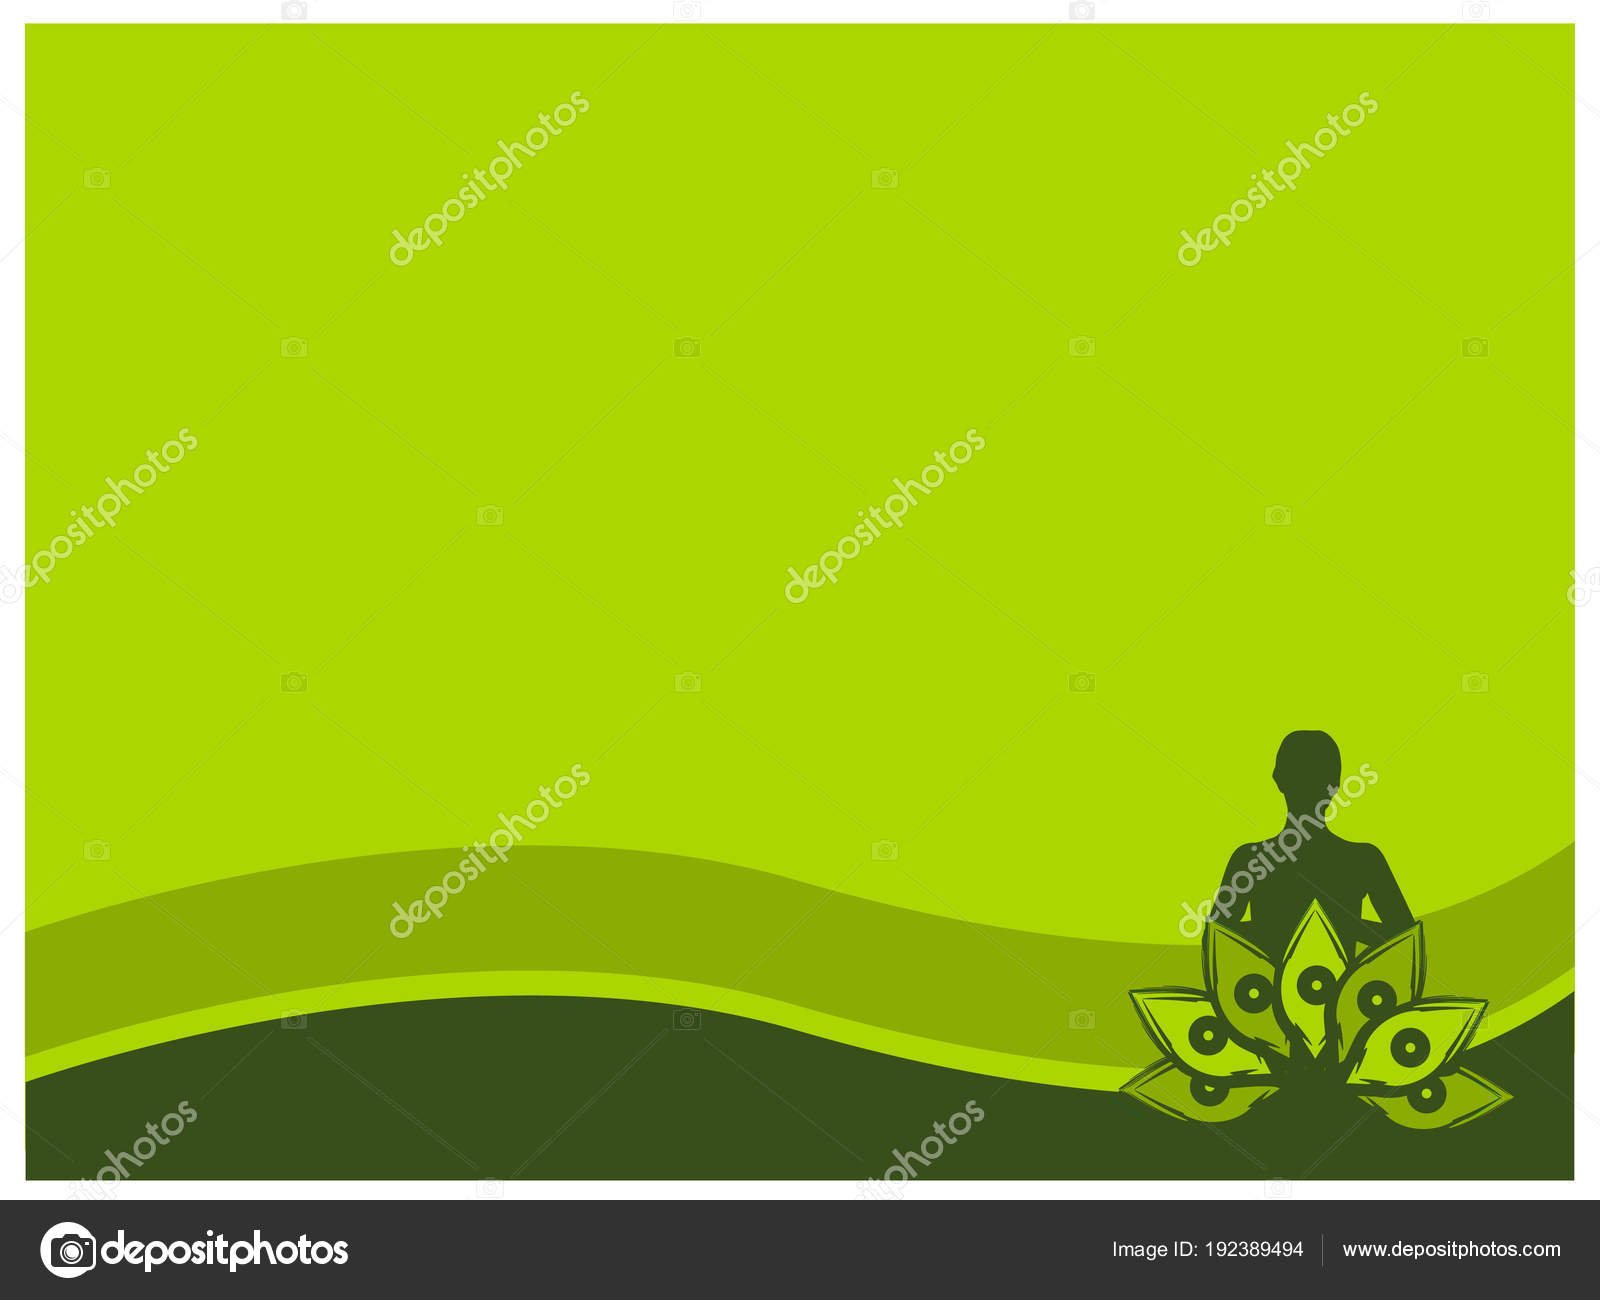 Green Background Yoga Natural Background Stock Vector C Sarya 192389494